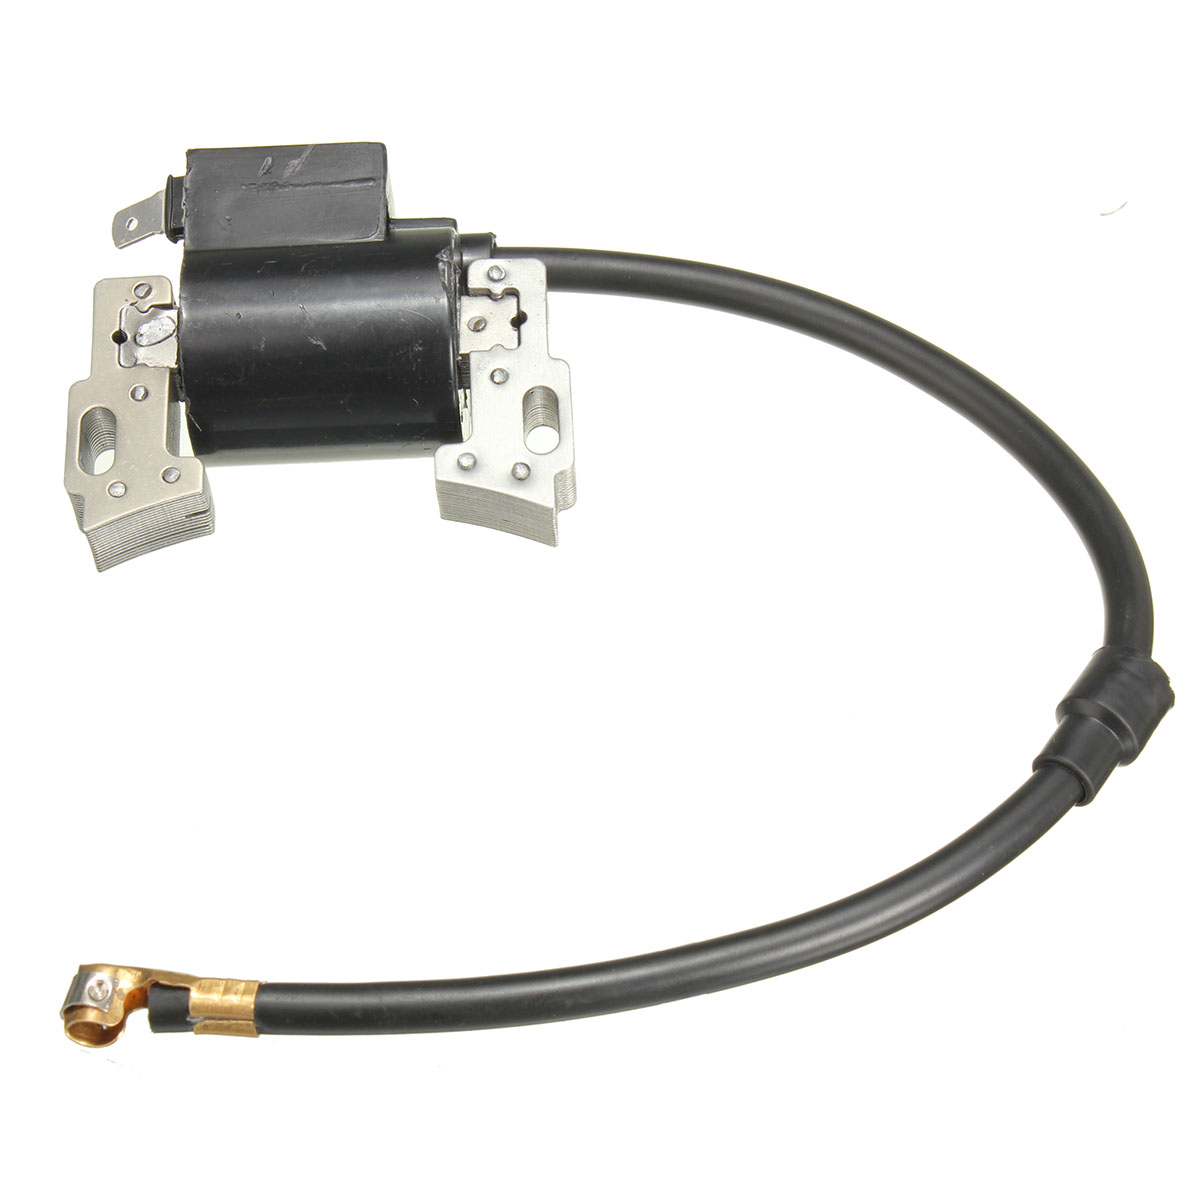 Ignition Coil For for Briggs&Stratton 690248 715231 795315 799650 (Eachine1) Chandler Продажа б у